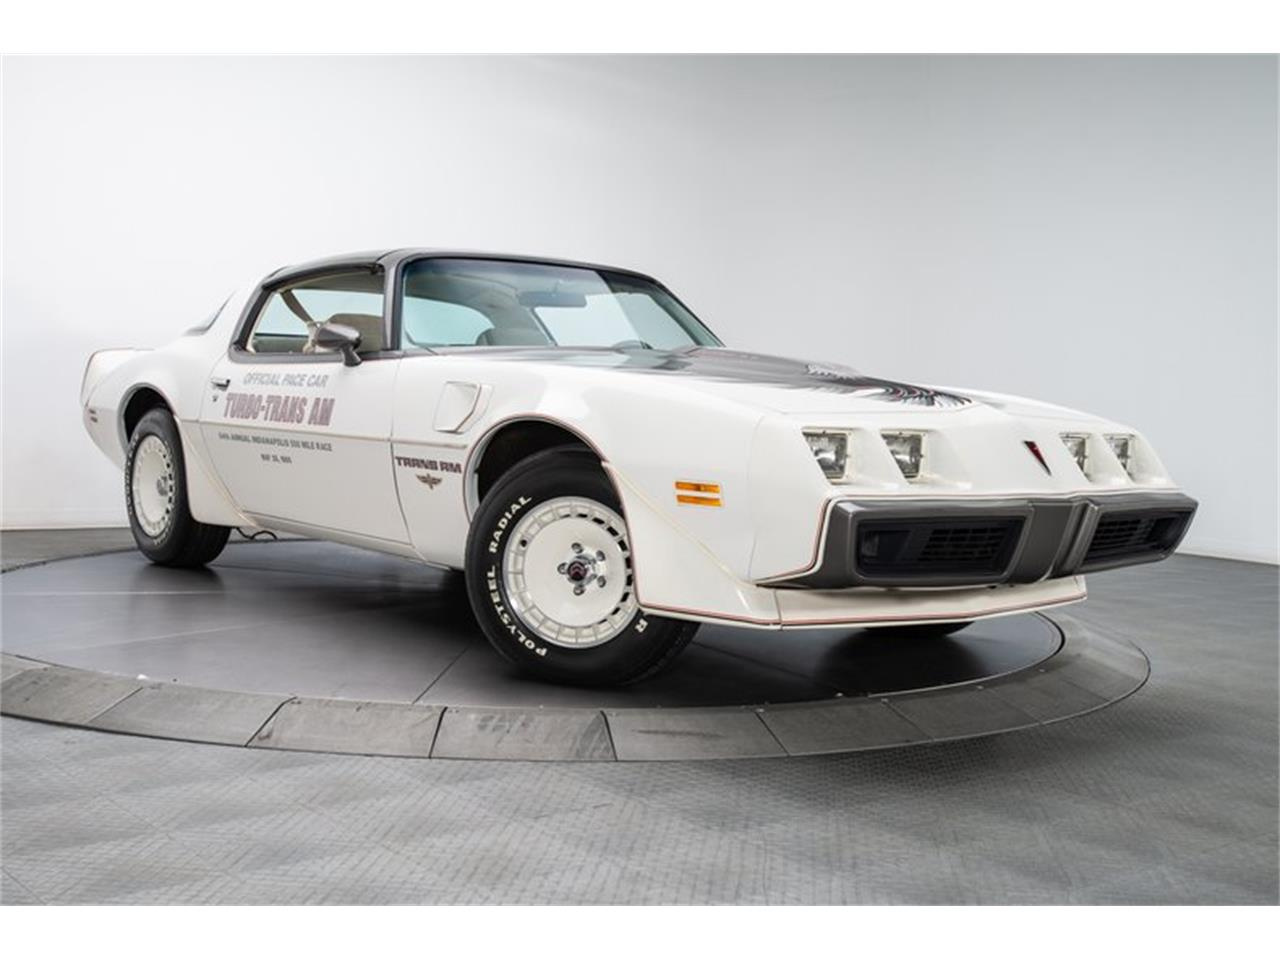 1980 Pontiac Firebird Trans Am Turbo Indy Pace Car Edition for sale in Charlotte, NC – photo 16